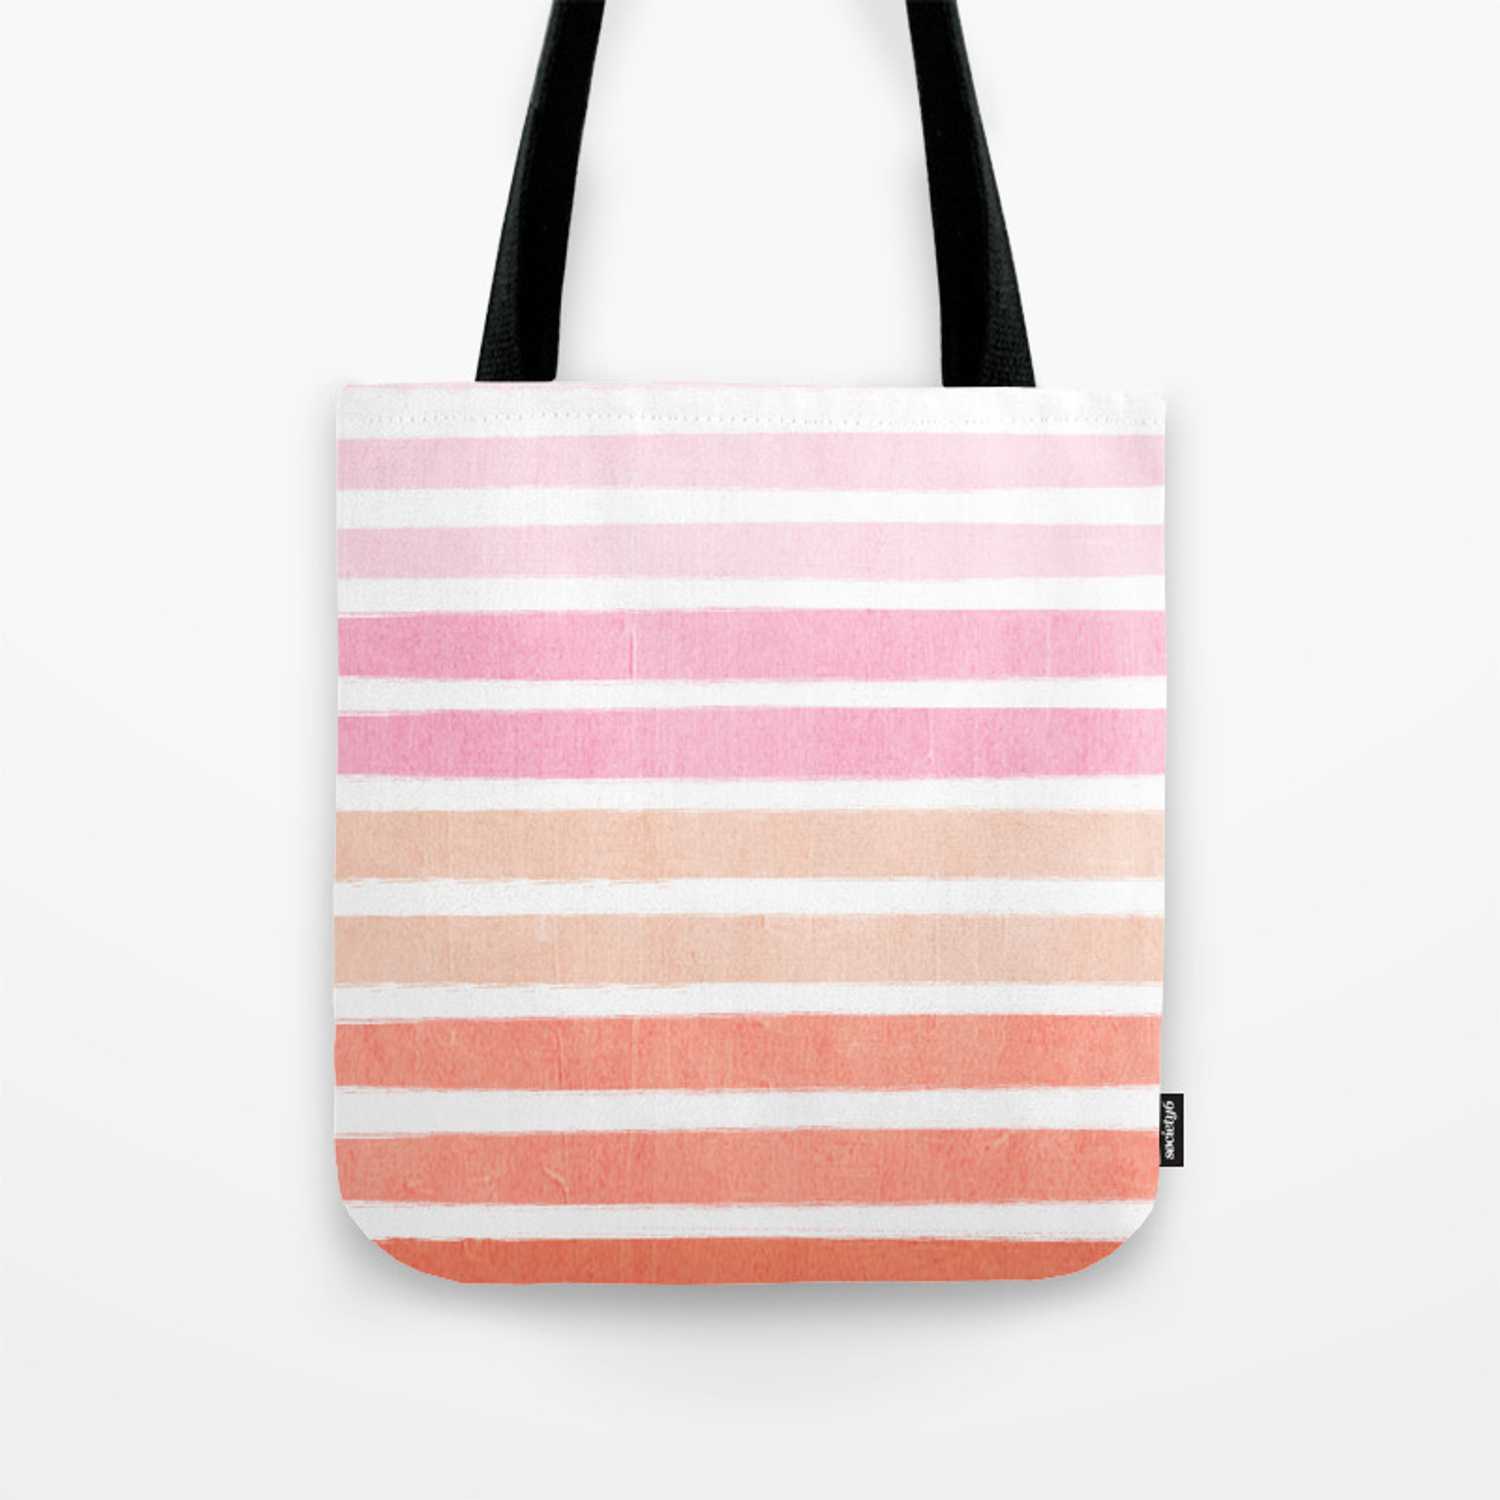 Camil Ombre Gradient Brushstrokes Abstract Painting Minimalist Seaside Coastal Beach Cottage Decor Tote Bag